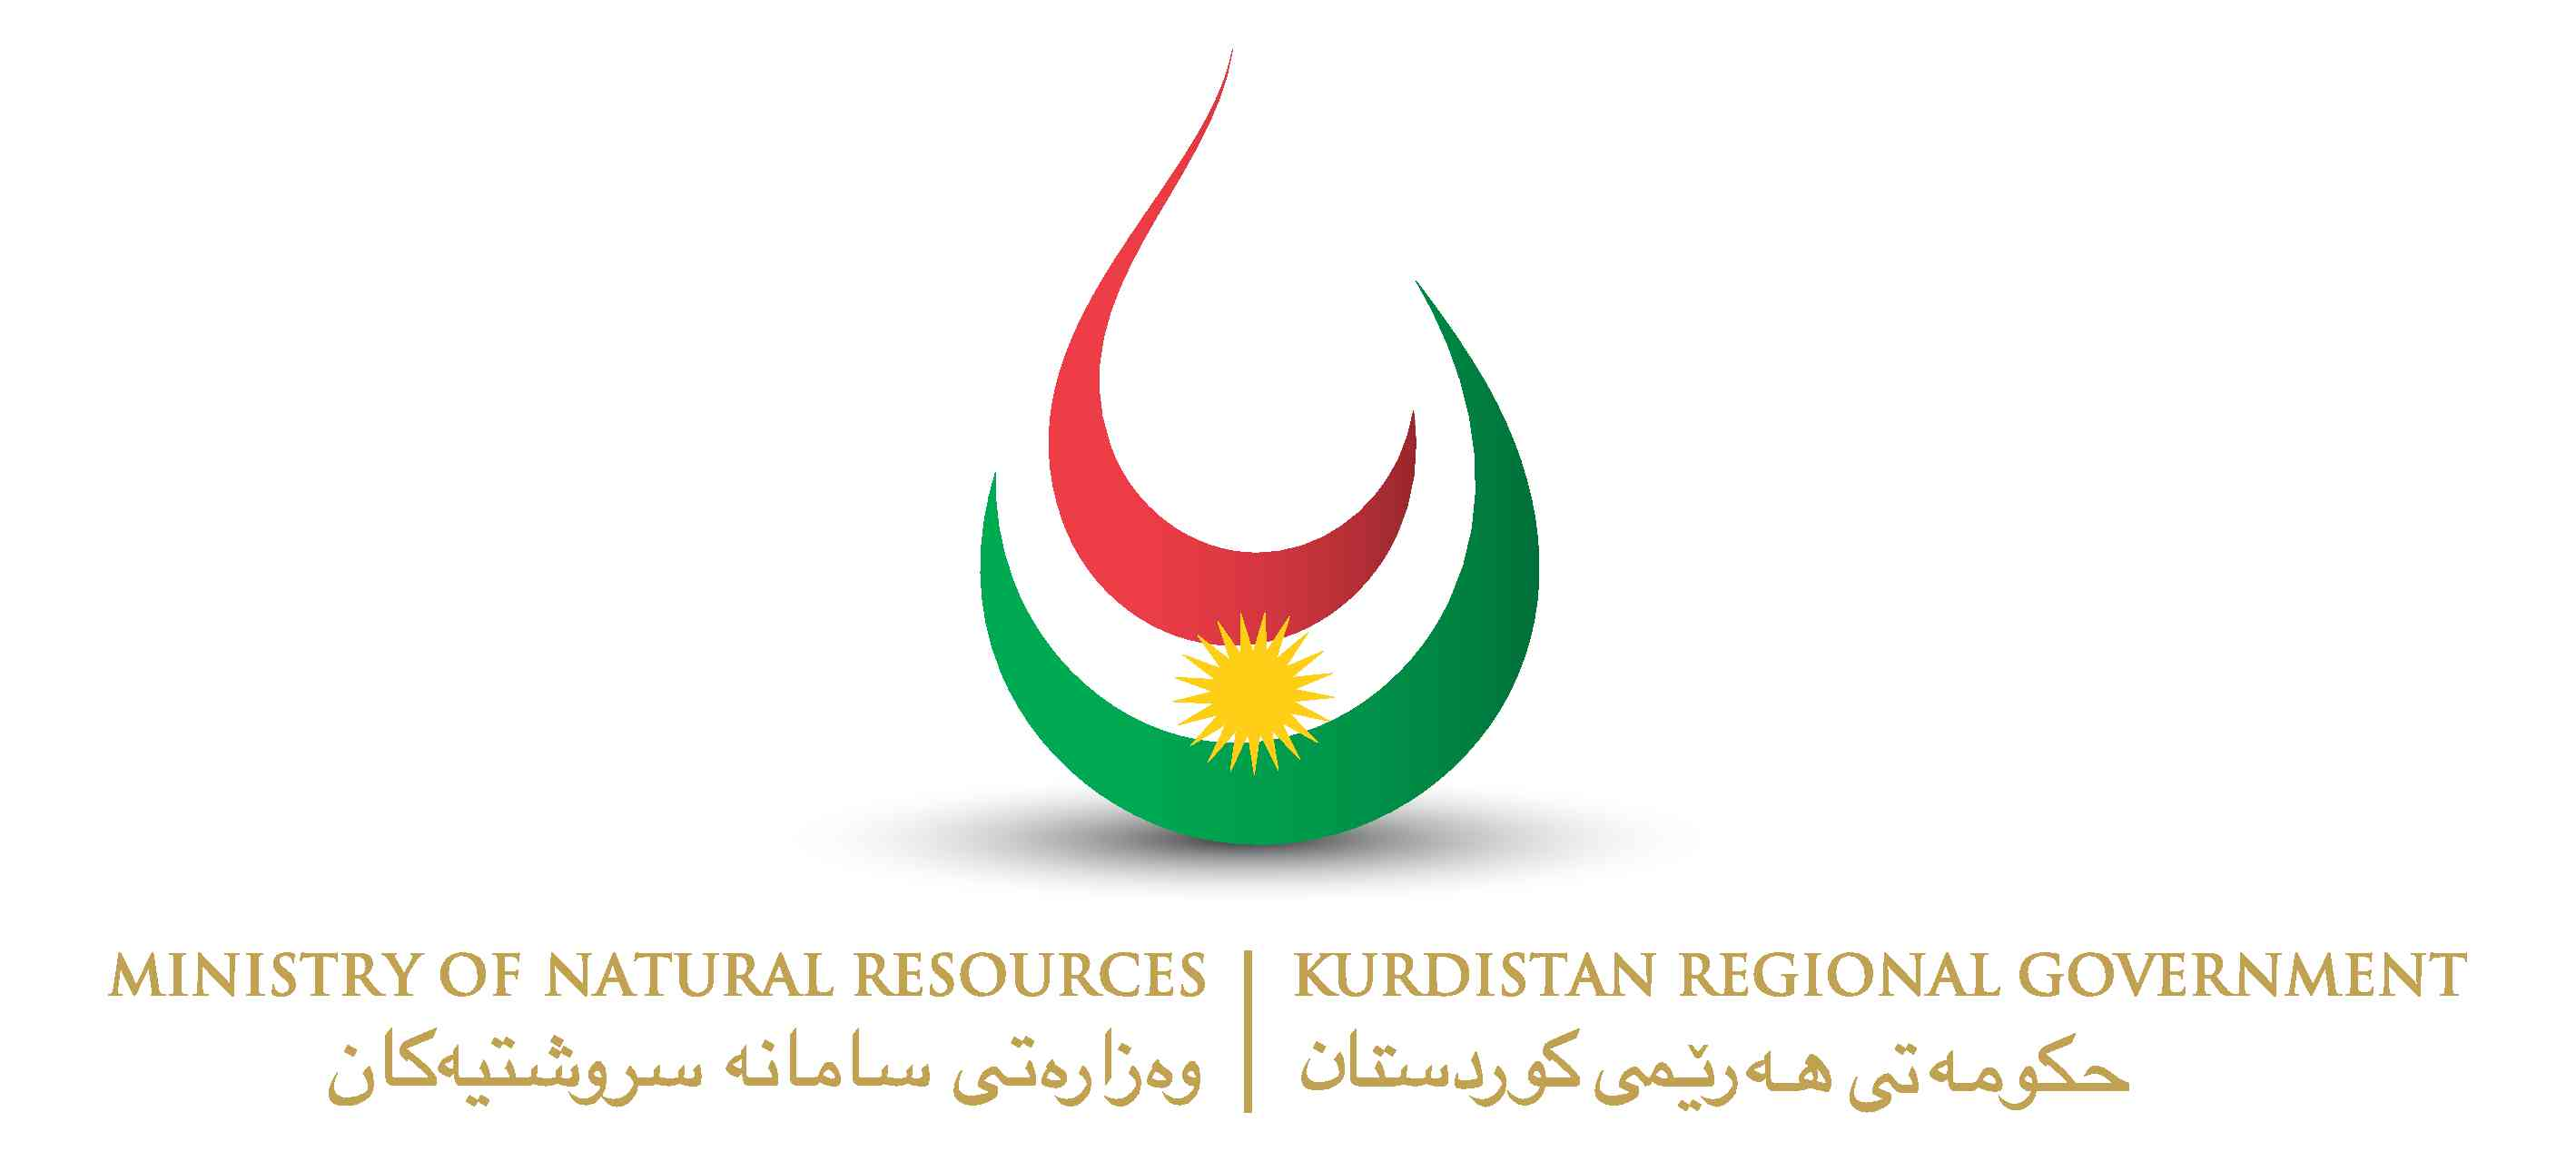 Statement by Ministry of Natural Resources regarding the producing International Oil Companies (IOCs) in the Kurdistan Region